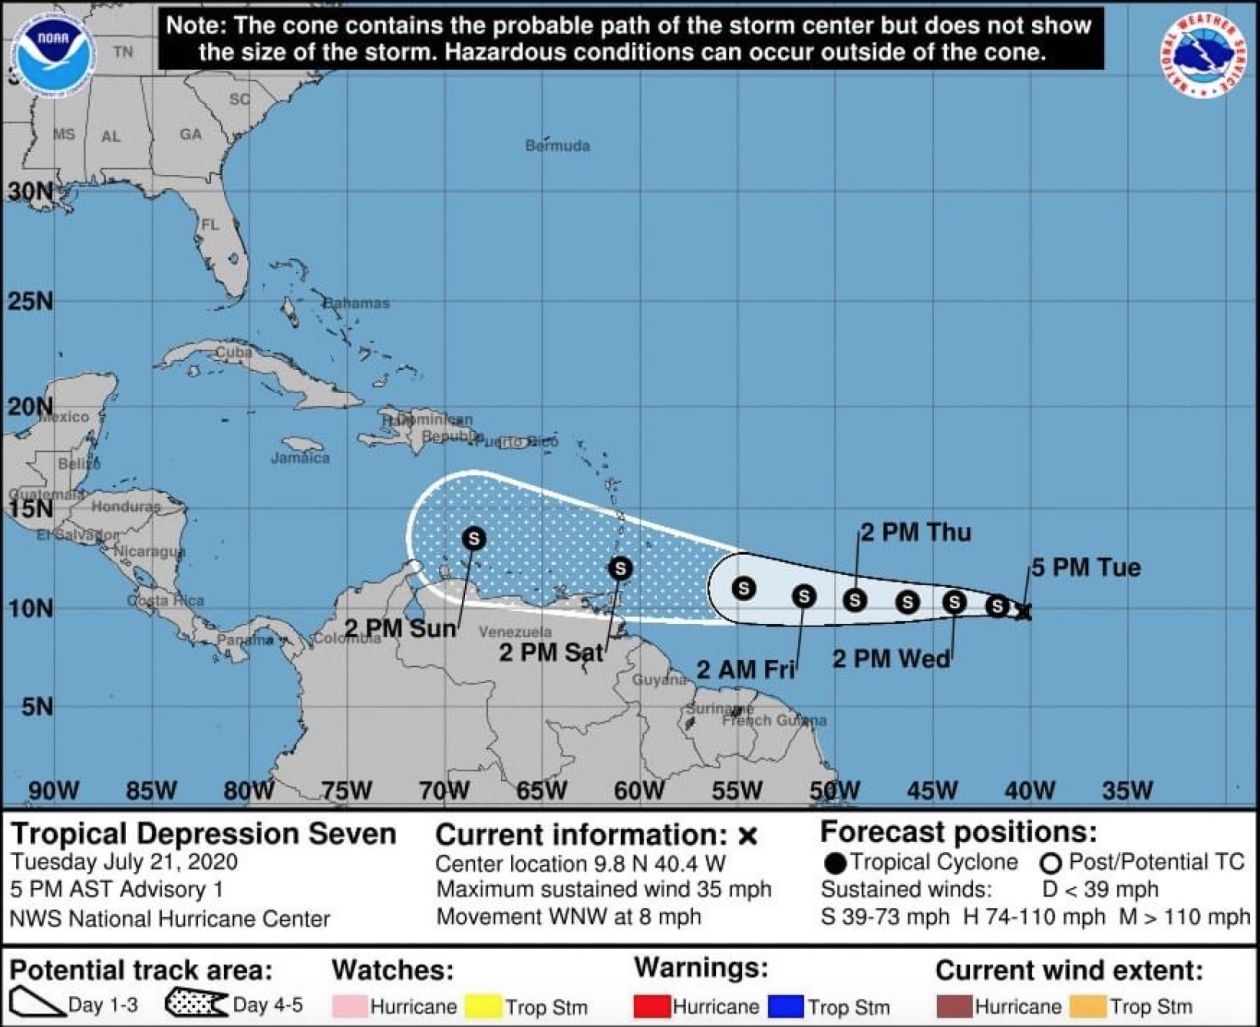 NOAA Named Storm